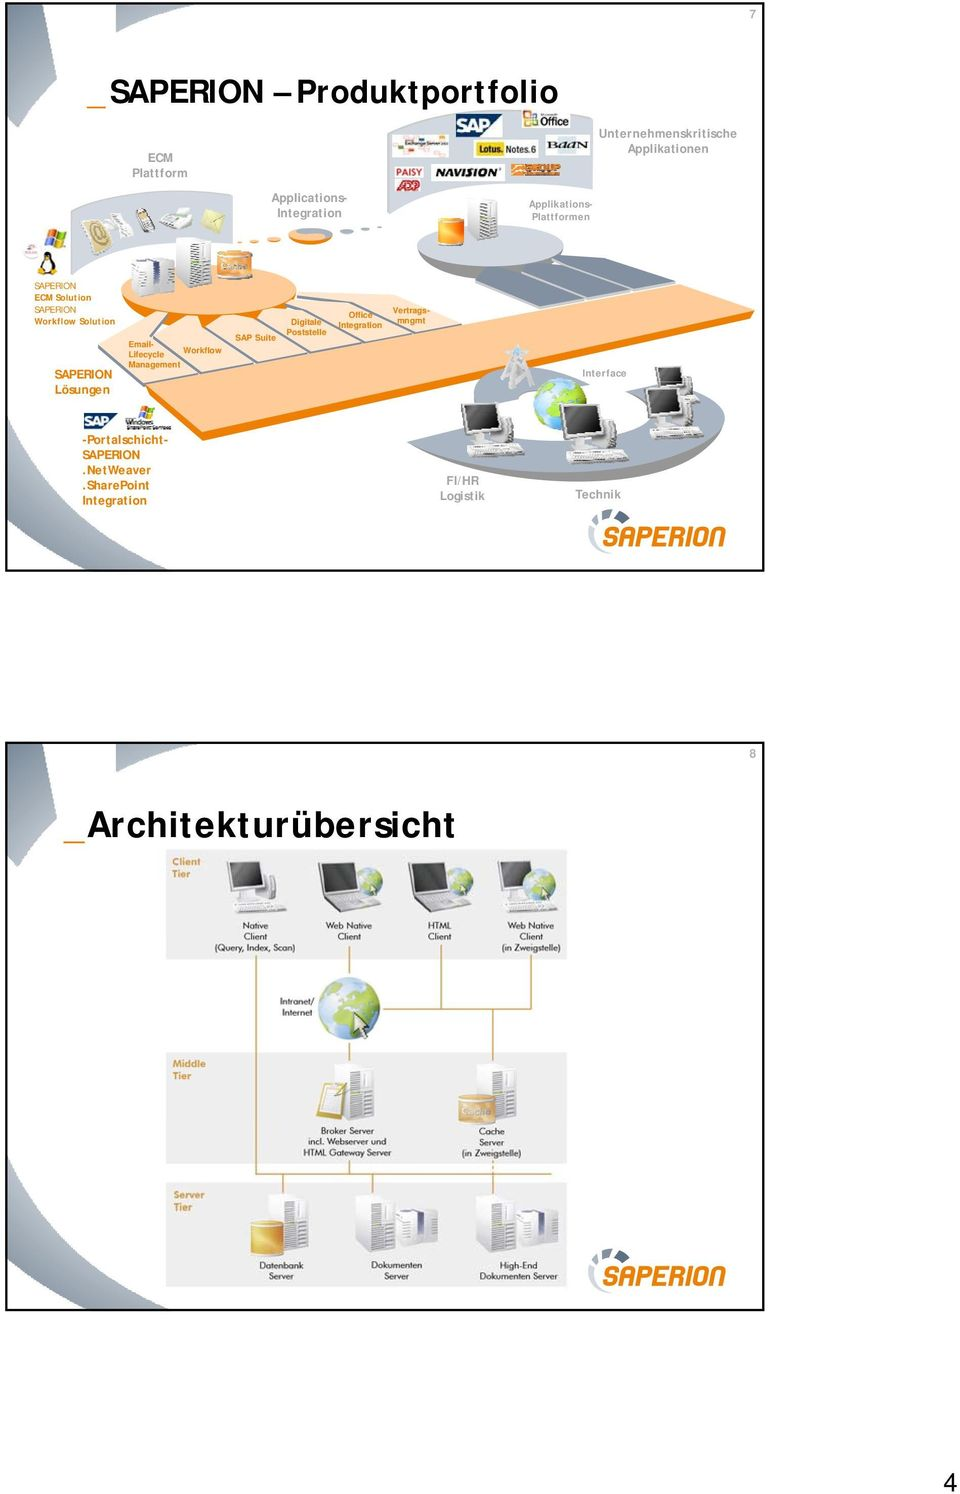 Lifecycle Workflow Management SAPERION Lösungen SAP Suite Digitale Poststelle Office Integration Interface